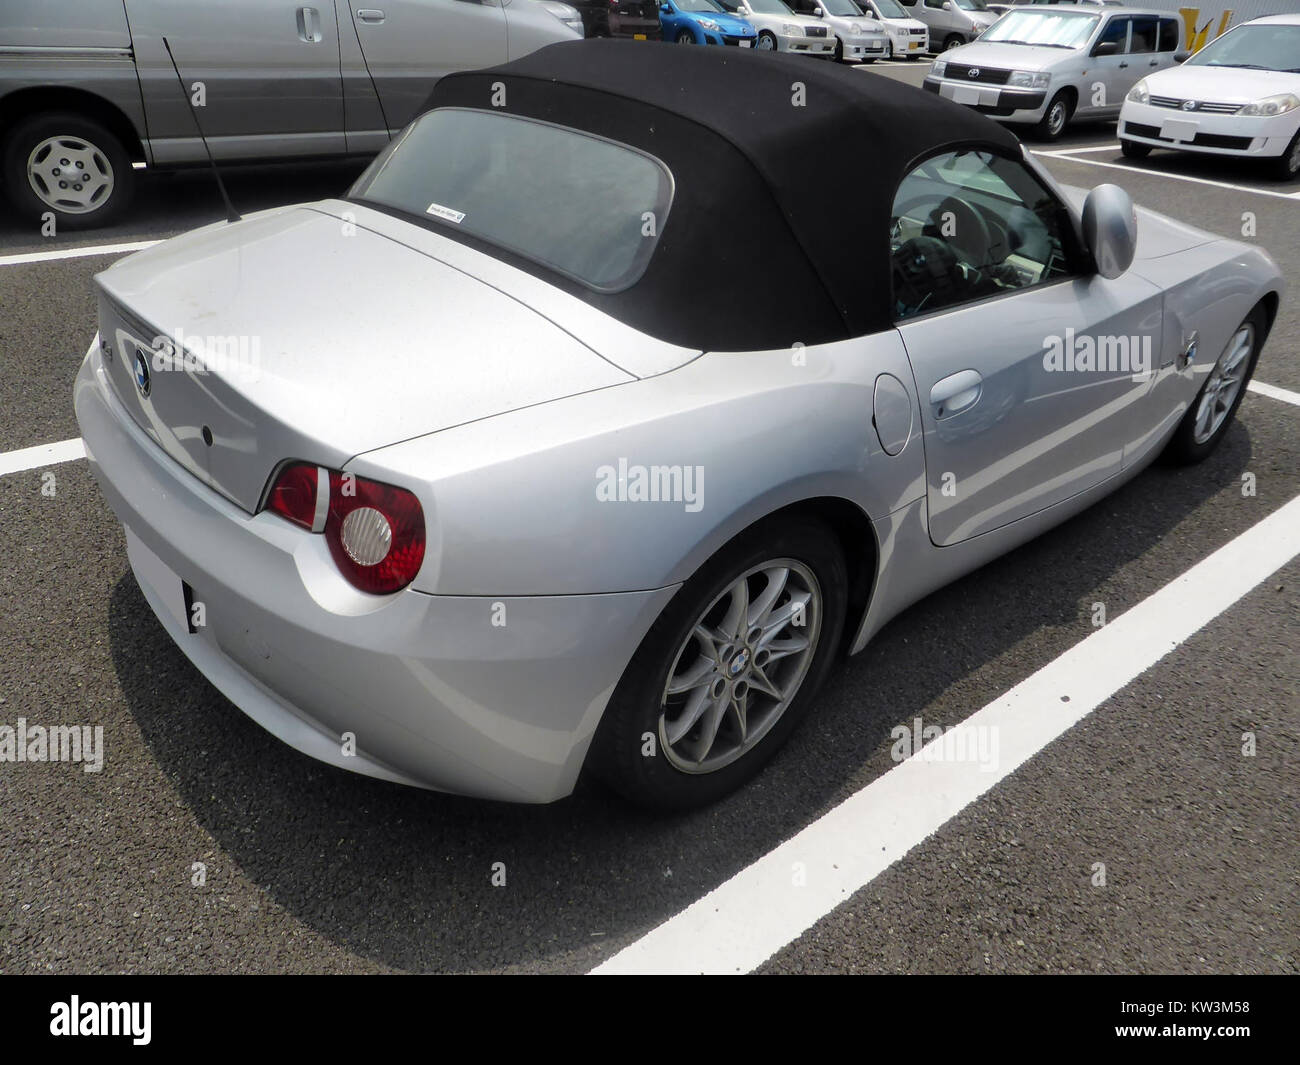 Bmw Z4 Roadster 22i E85 Rear Stock Photo 170341396 Alamy